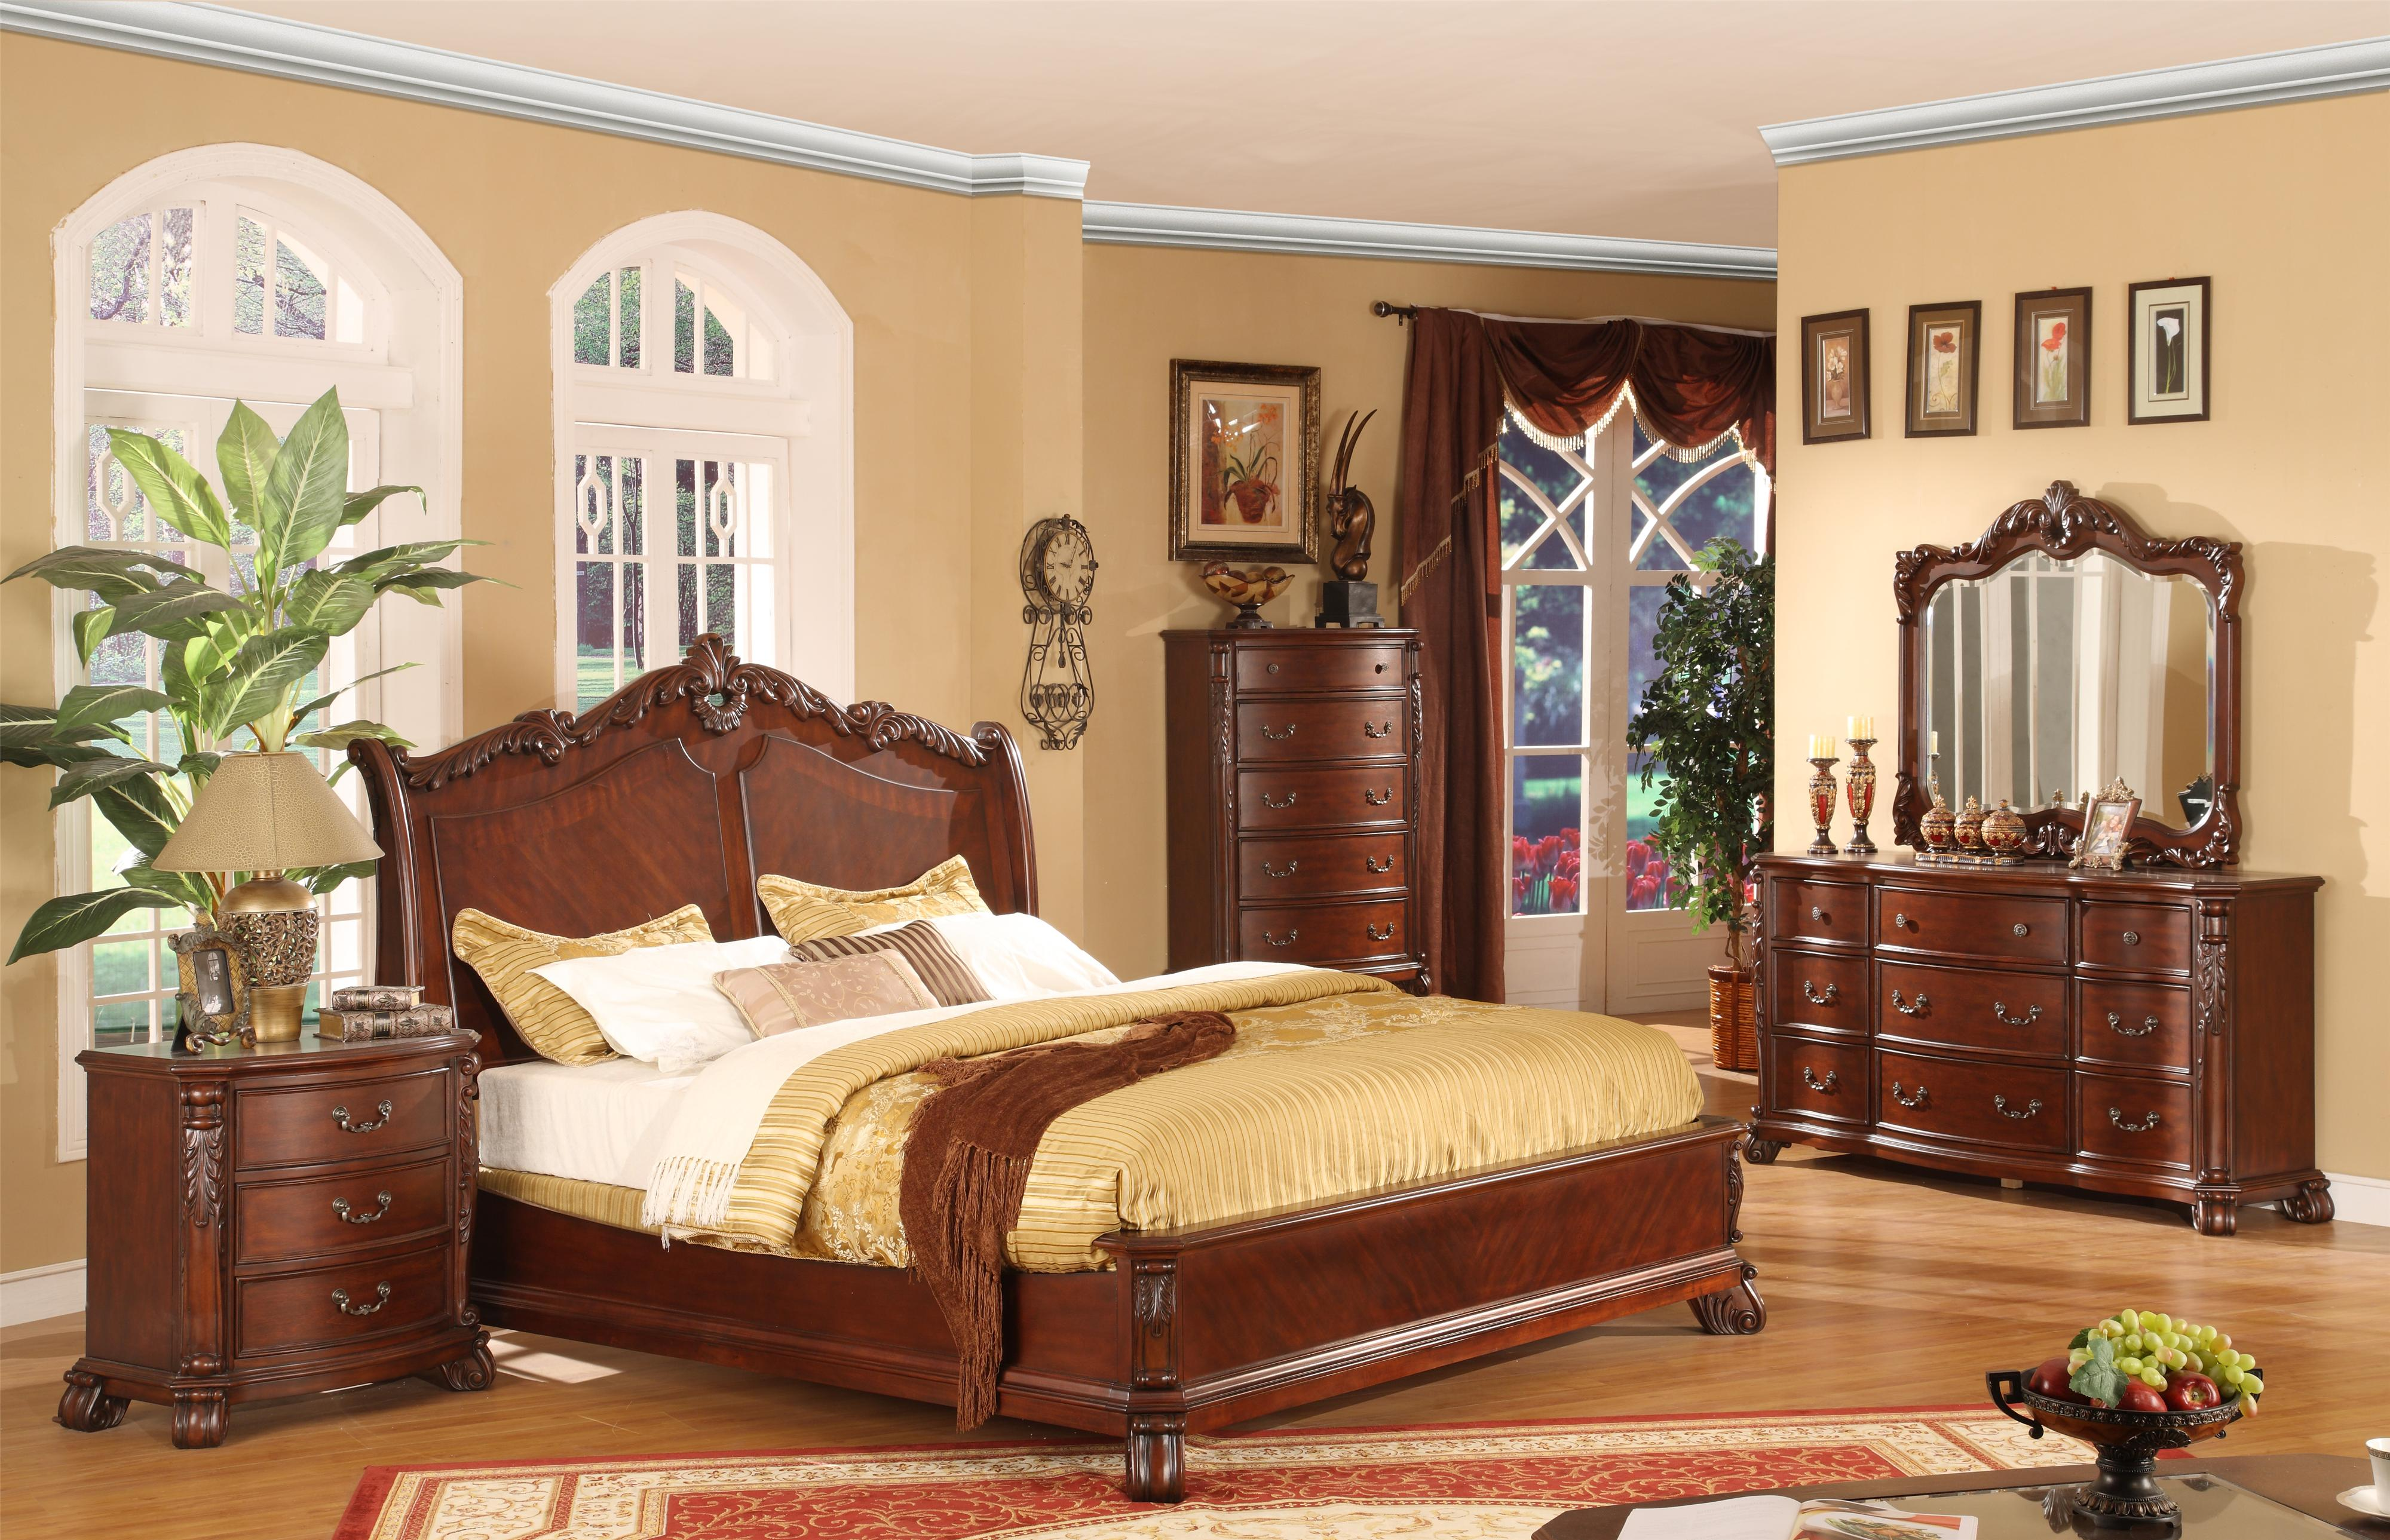 Lifestyle 9642 Traditional Queen Panel Bed with Acanthus Leaf Headboard -  Wayside Furniture - Panel Beds